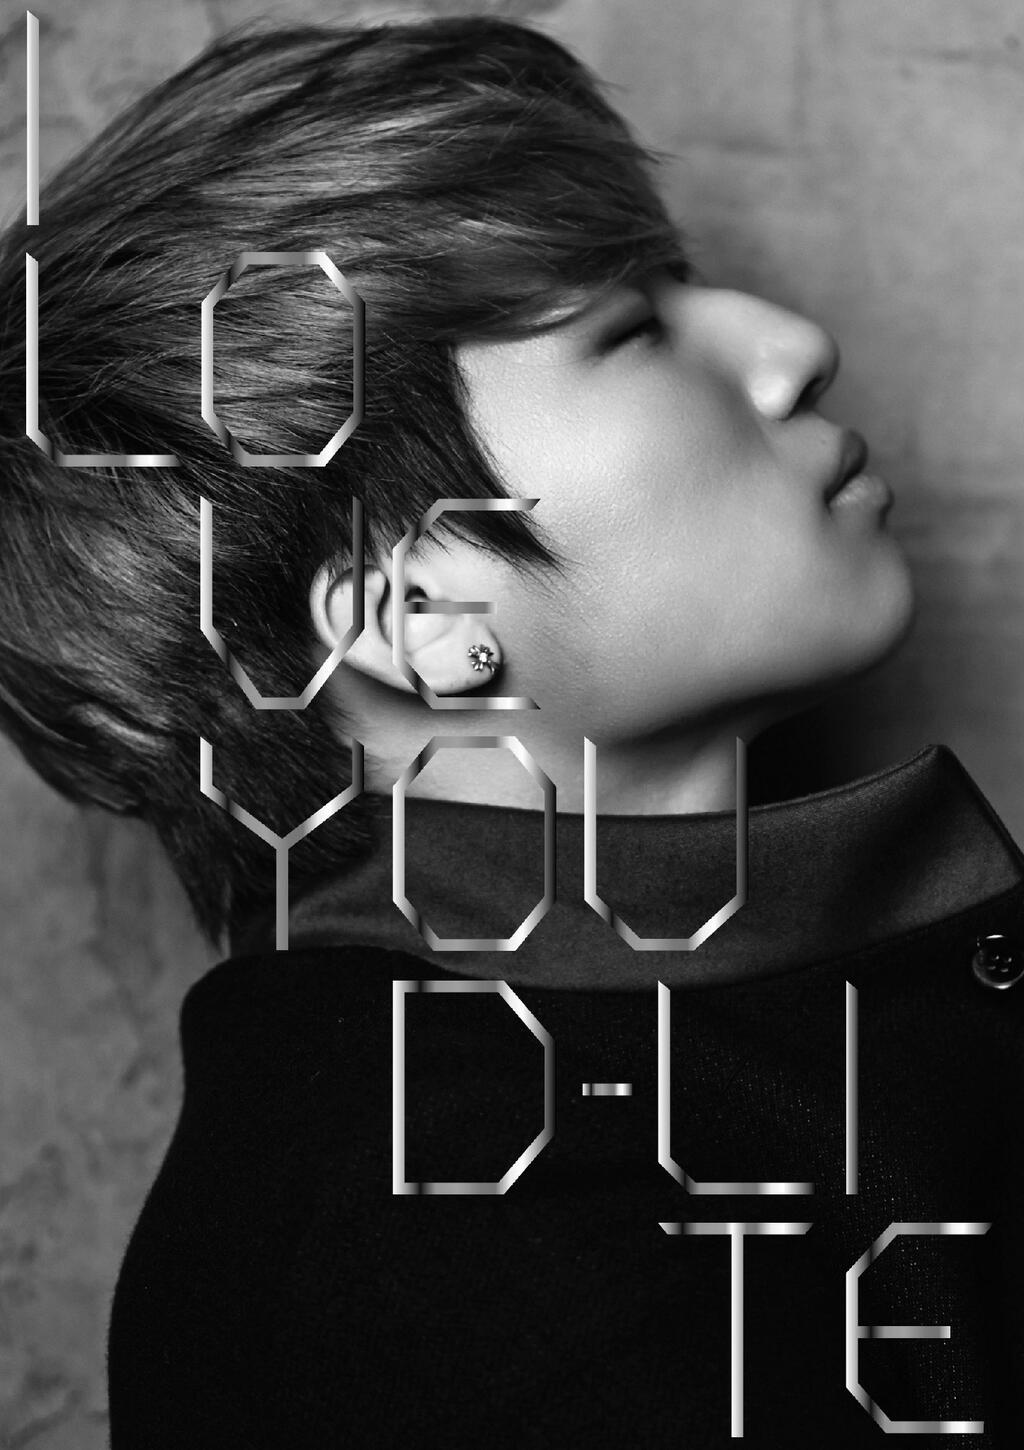 [Single] D-LITE (Daesung) - I Love You [Japanese] (MP3)